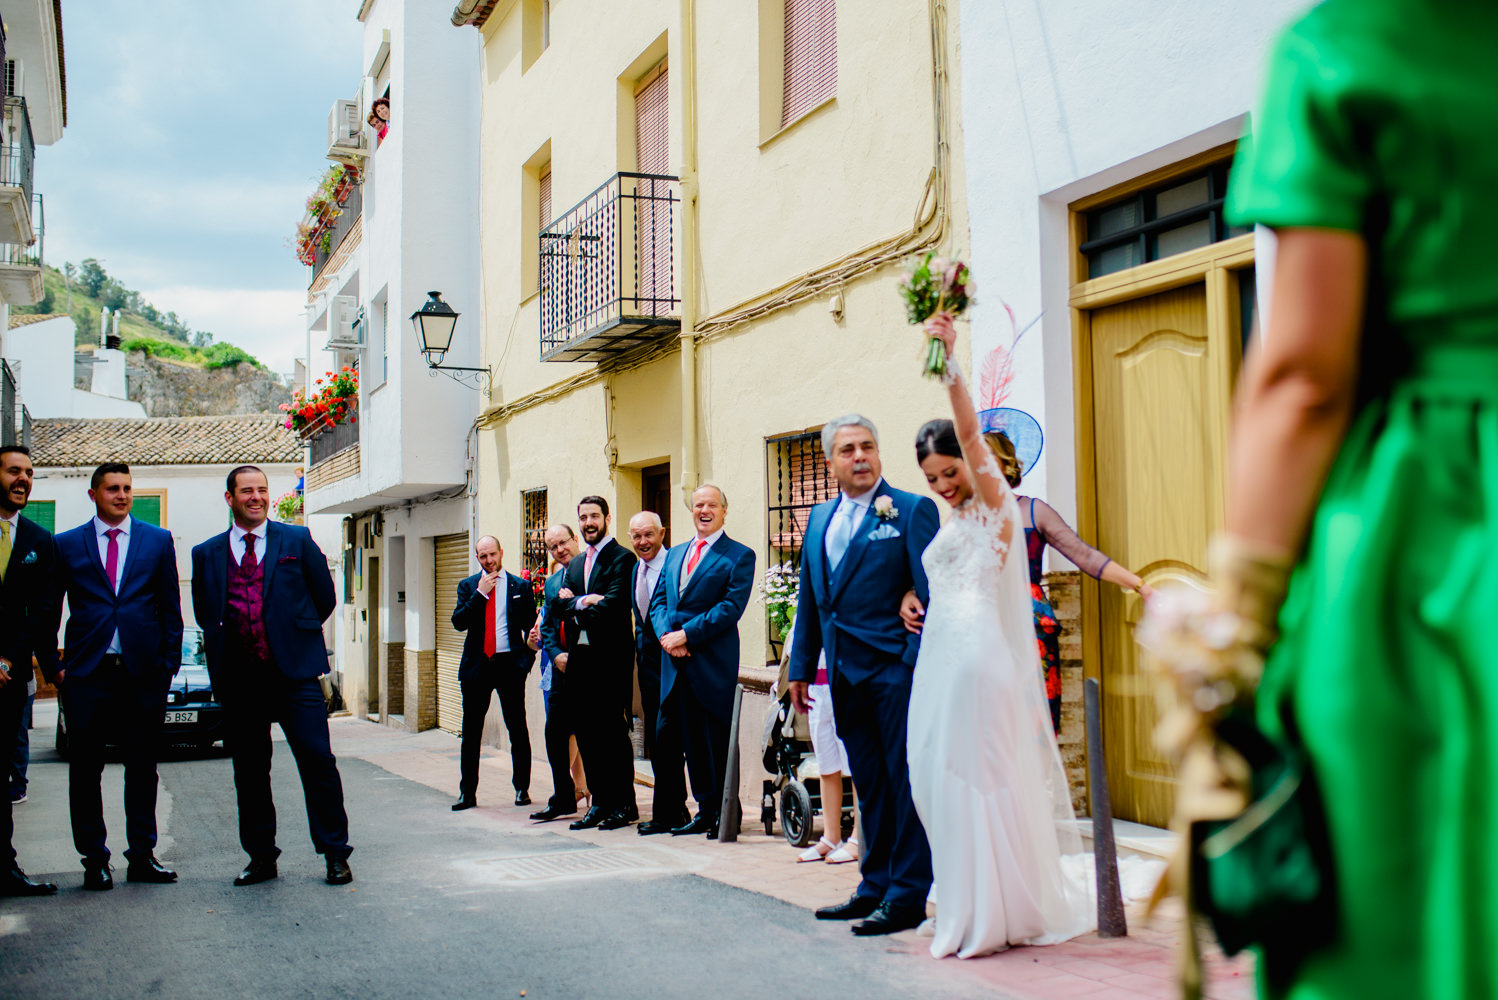 granada-wedding-photographer044.jpg